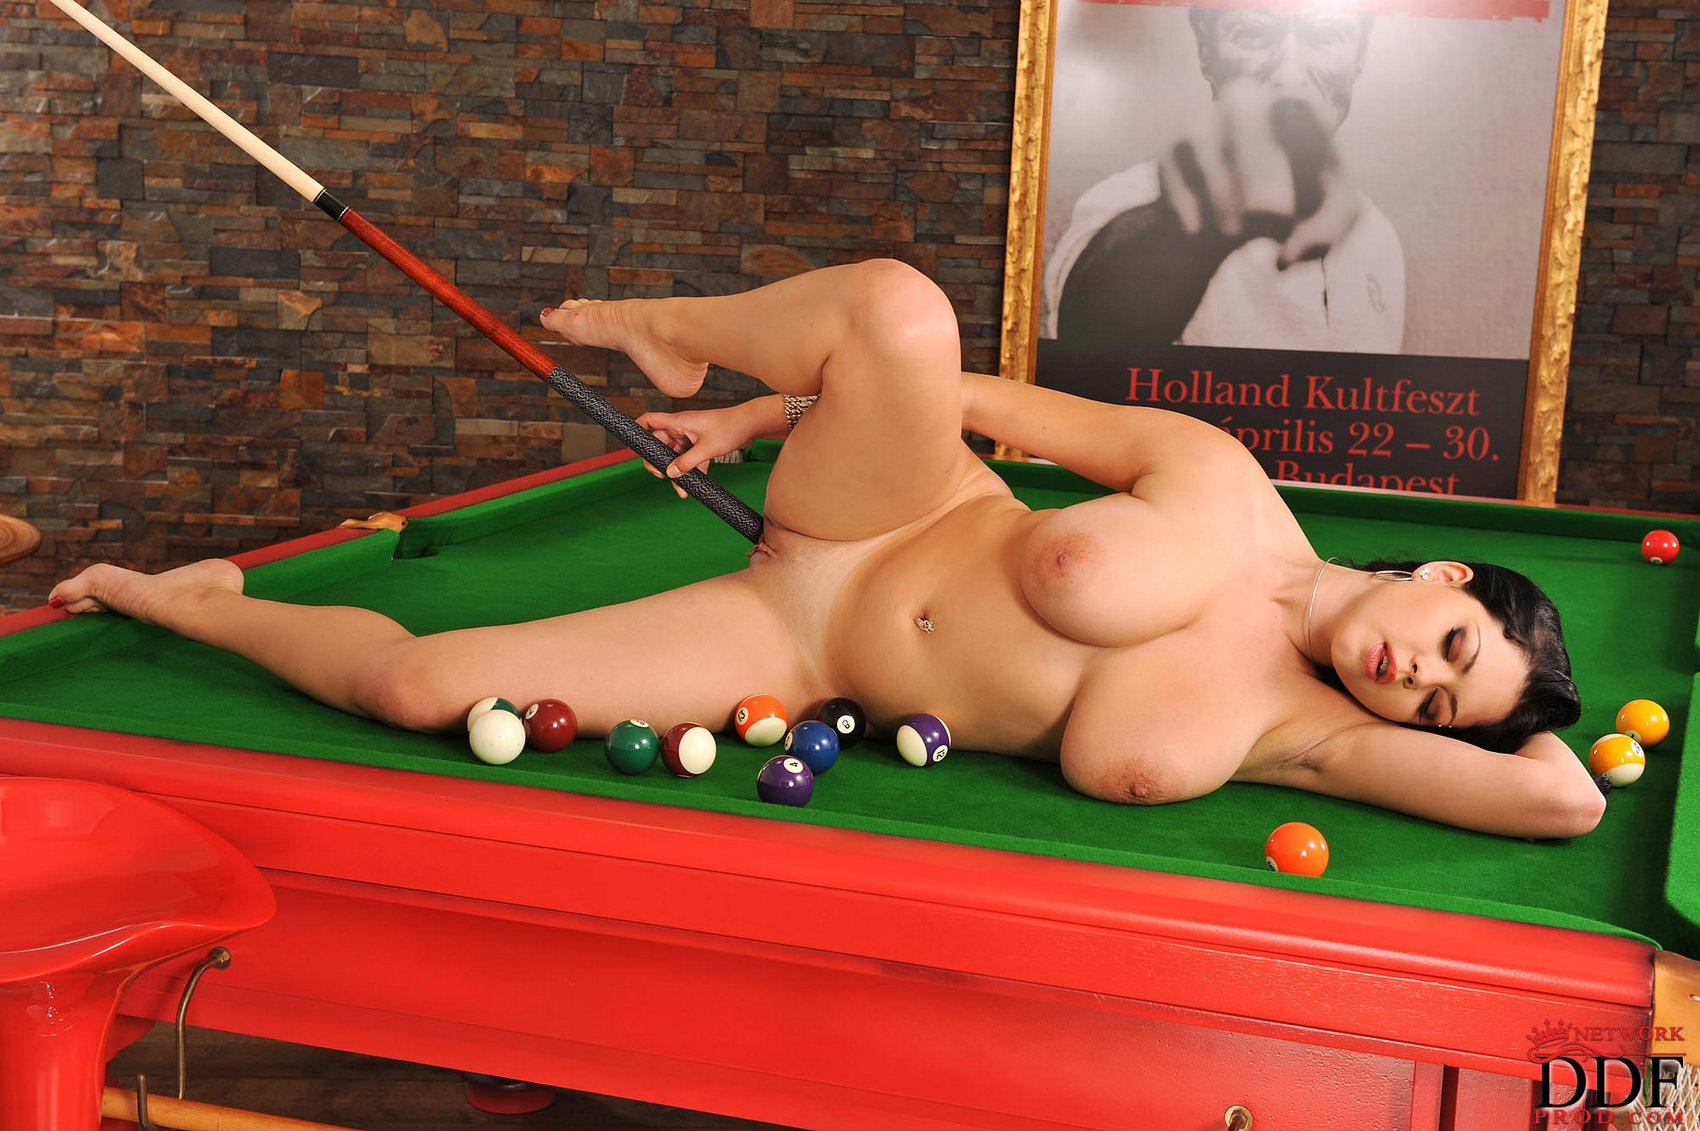 shione cooper posing naked on billiard table